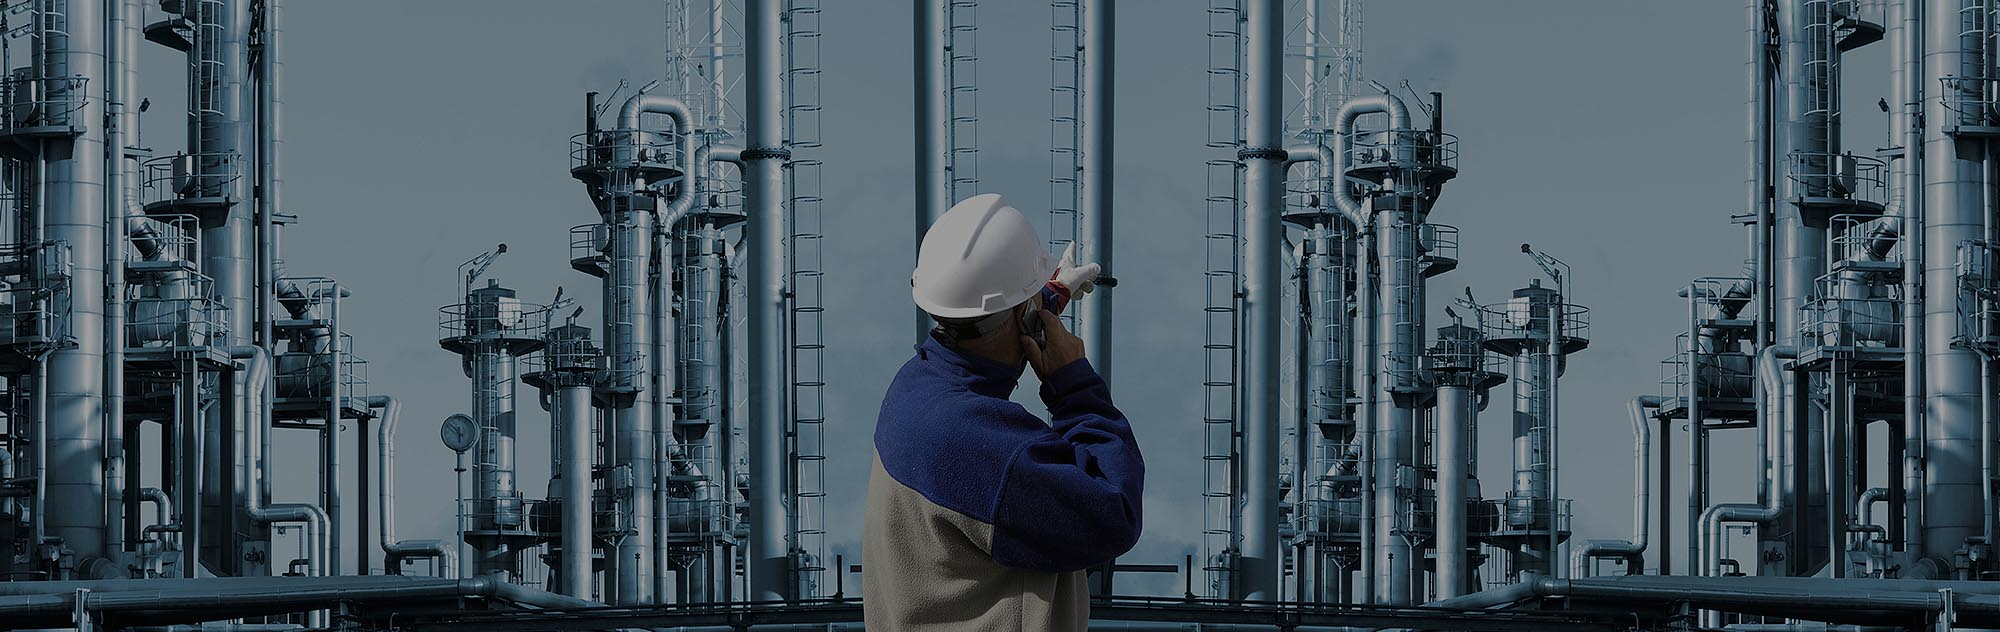 Oil and Gas Service Contractors in the ASEAN Region - Insurance from